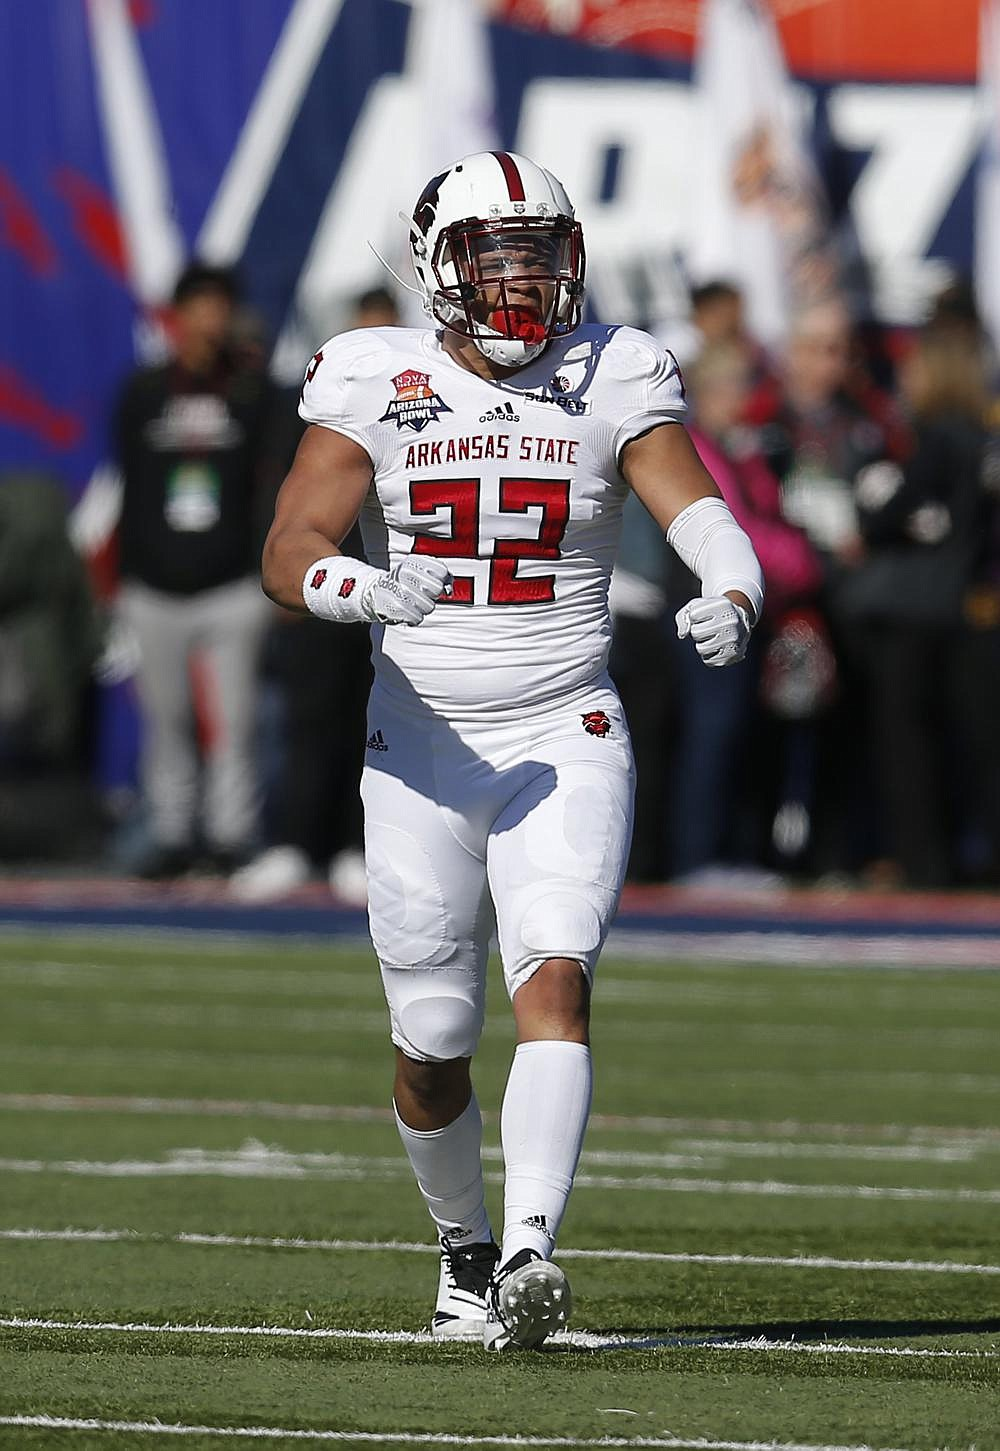 Arkansas State senior linebacker Caleb Bonner has shown an ability to play all three linebacker positions in the Red Wolves' scheme, providing ASU depth at each spot. (AP file photo)